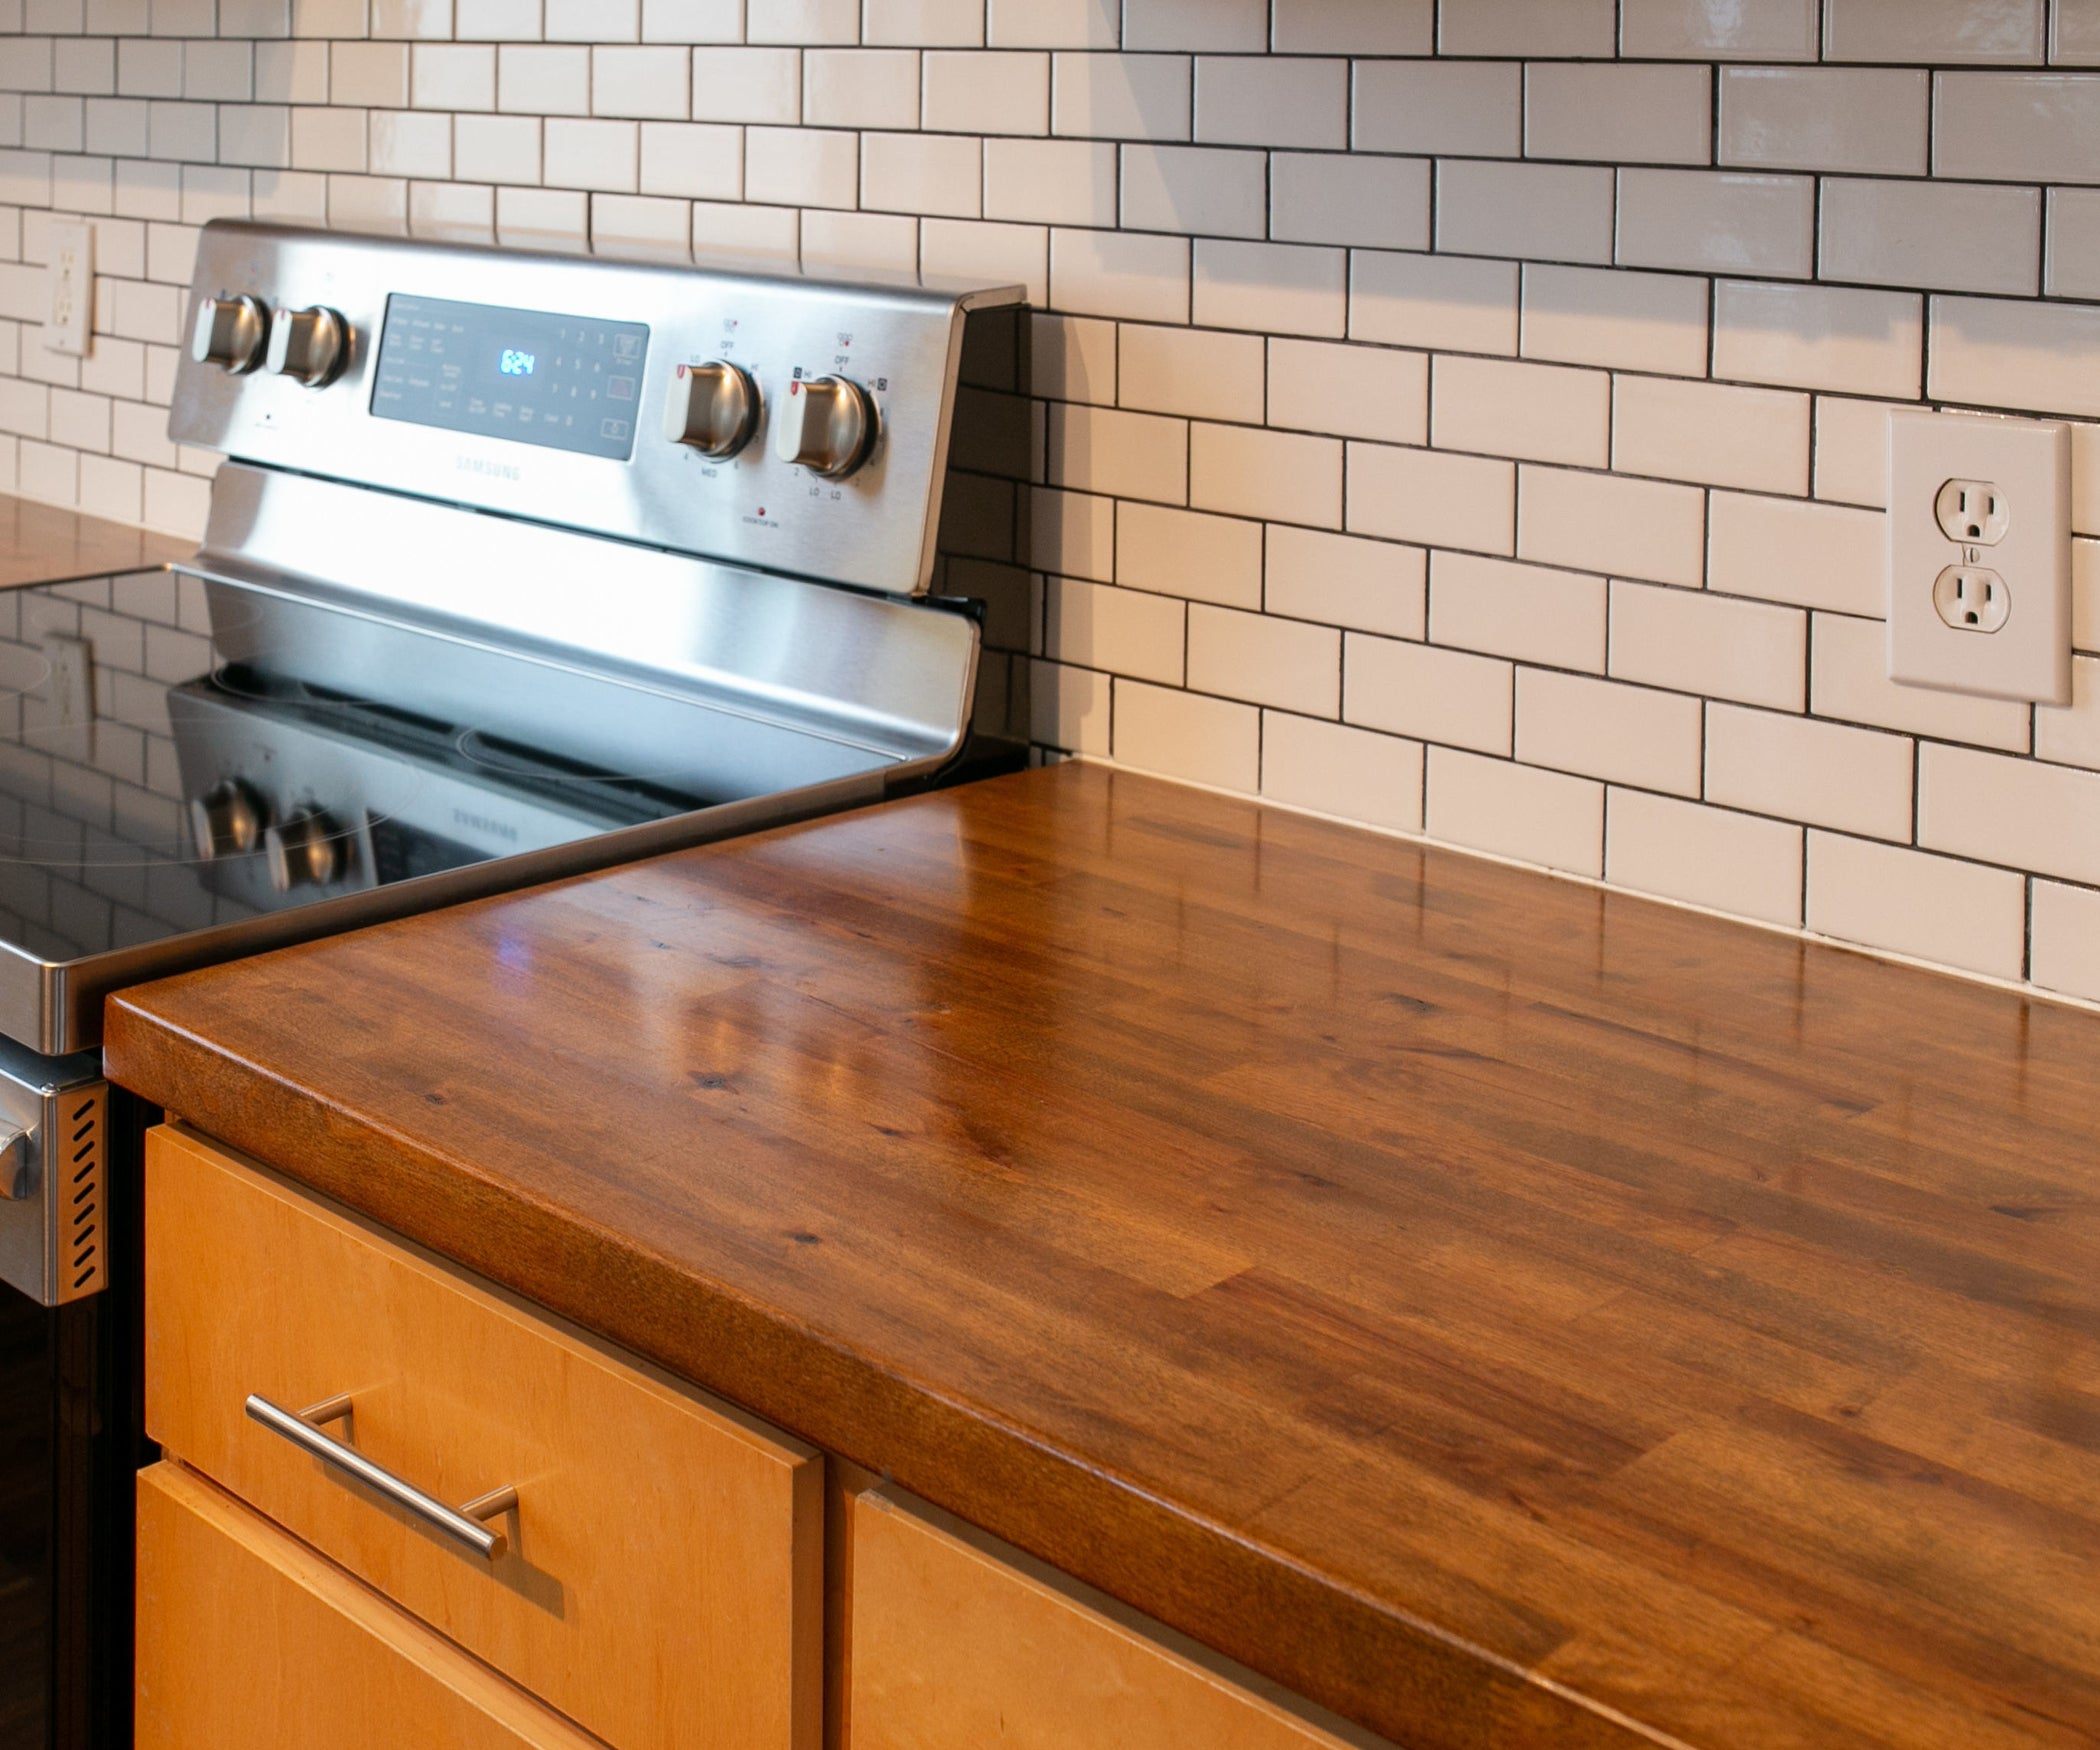 Diy Ikea Butcher Block Countertops 8 Steps With Pictures Instructables